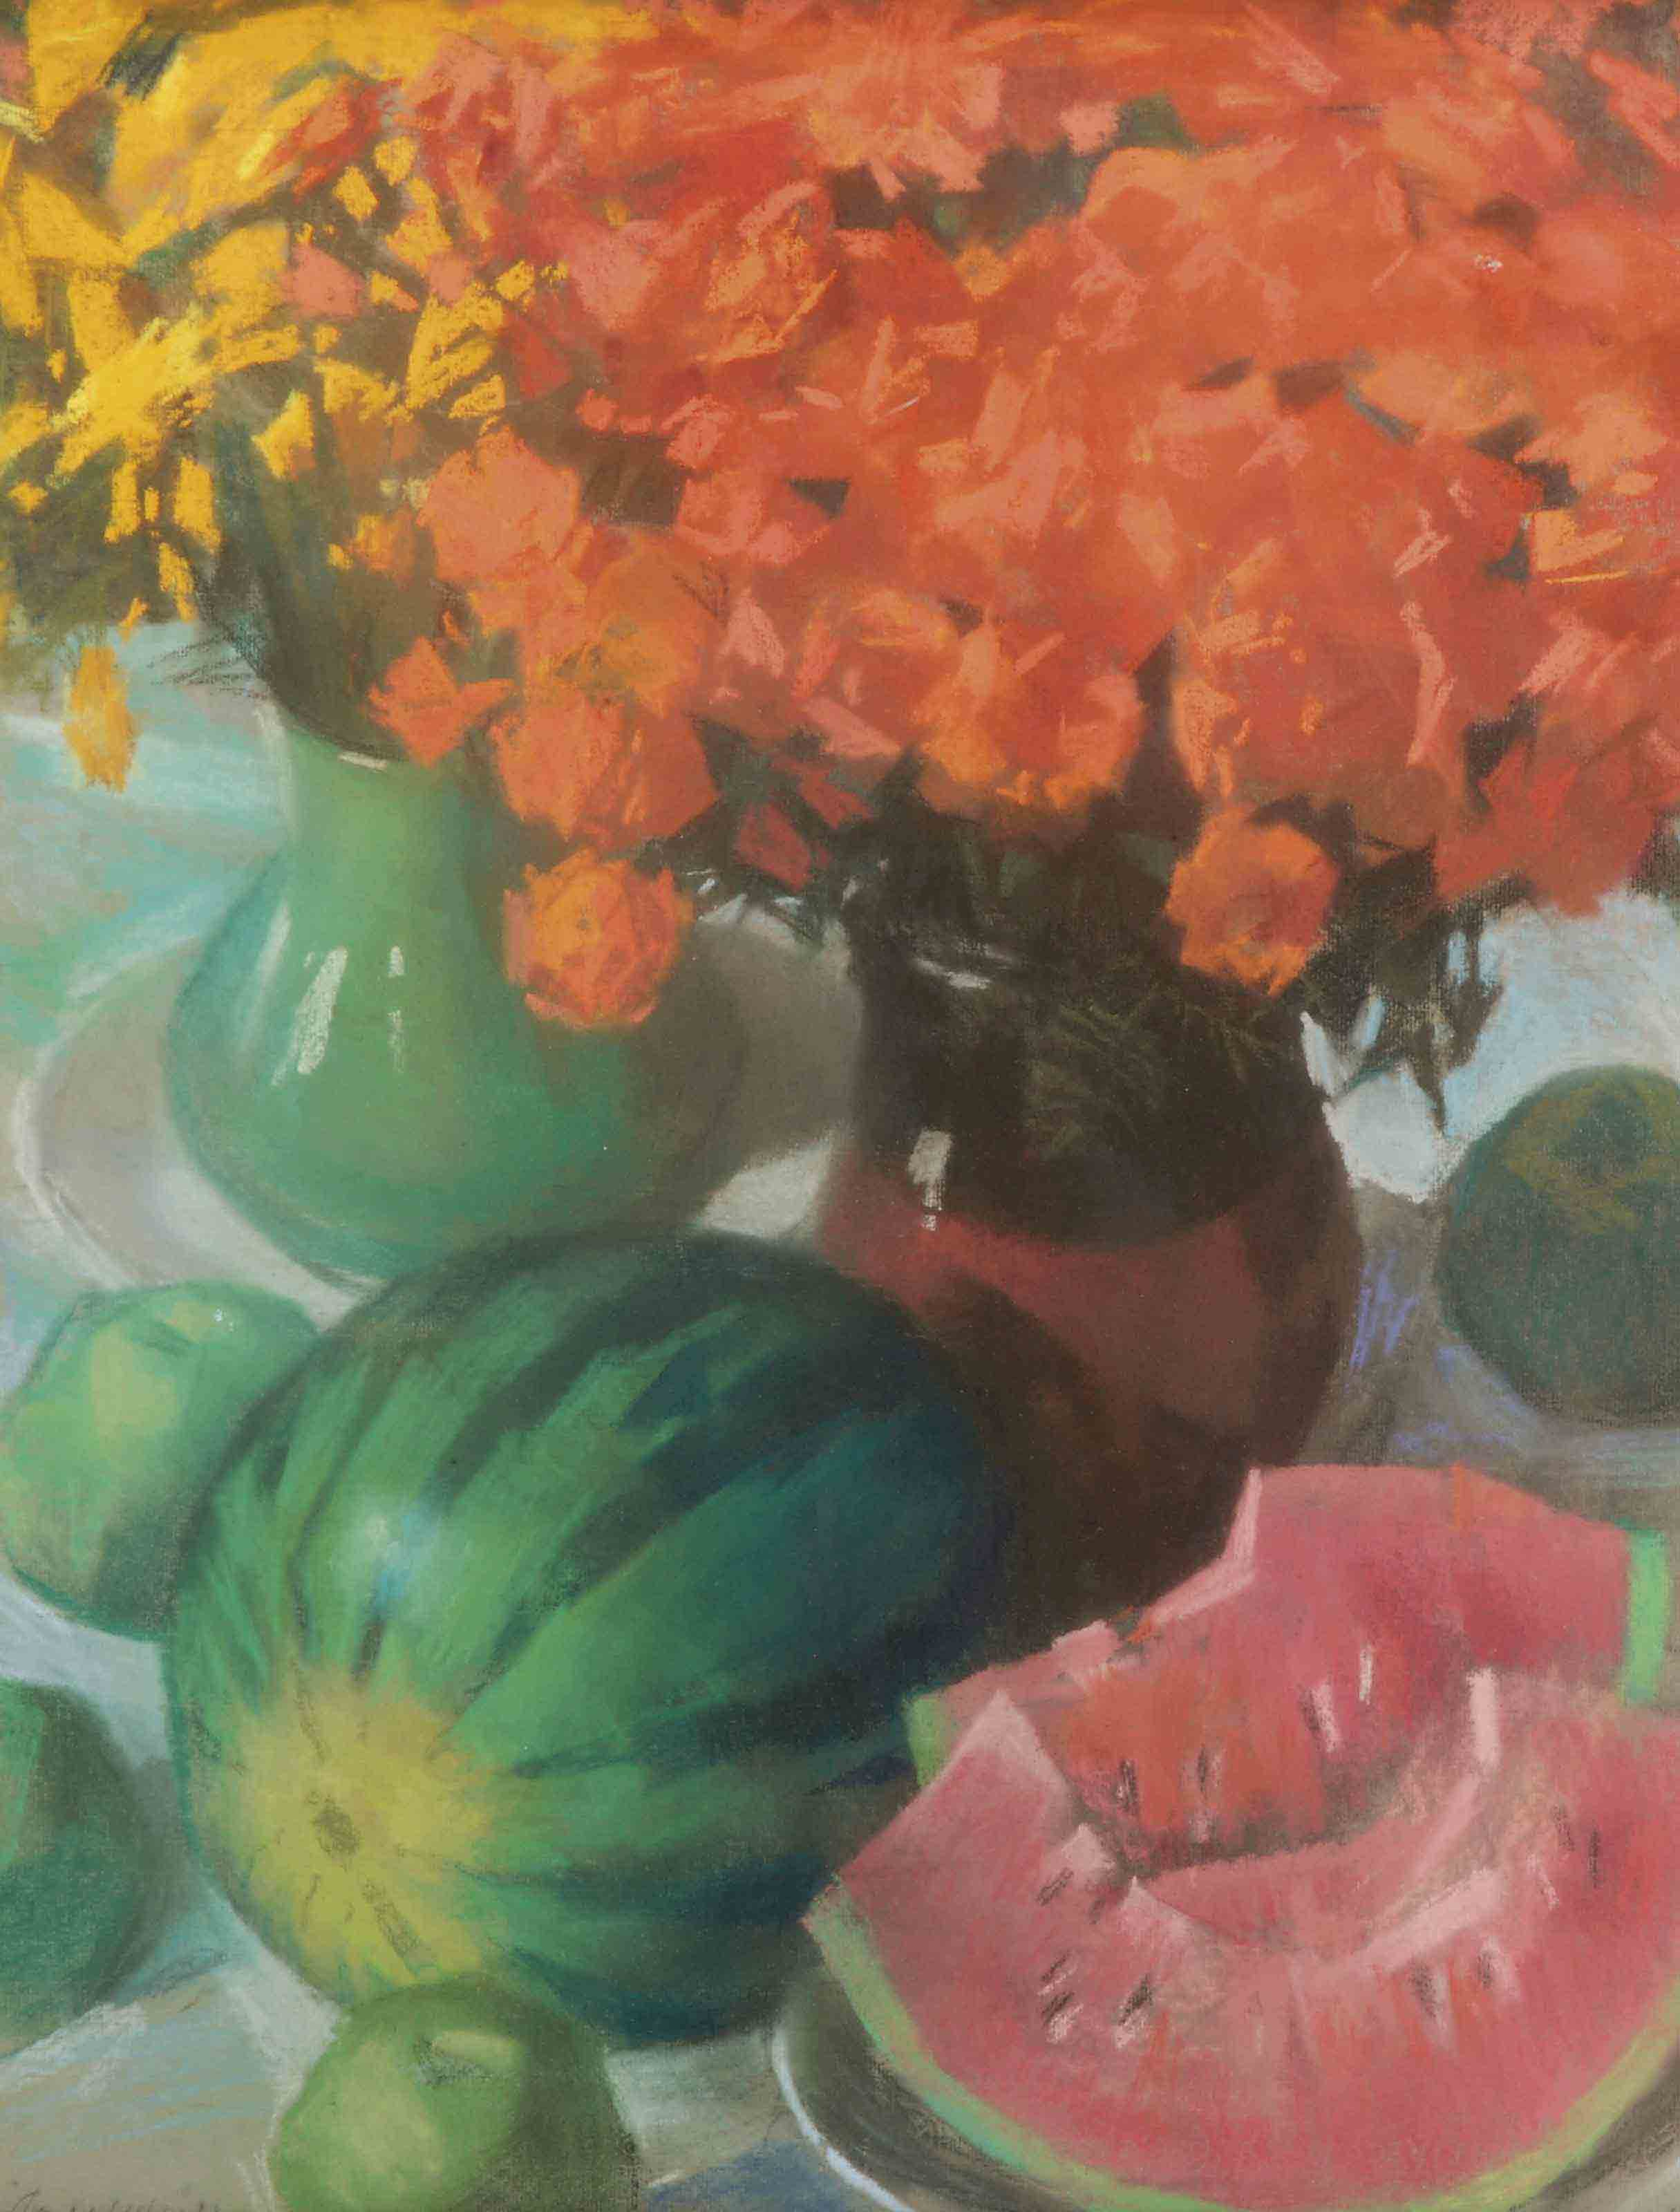 A still life with watermelons and yellow and orange flowers